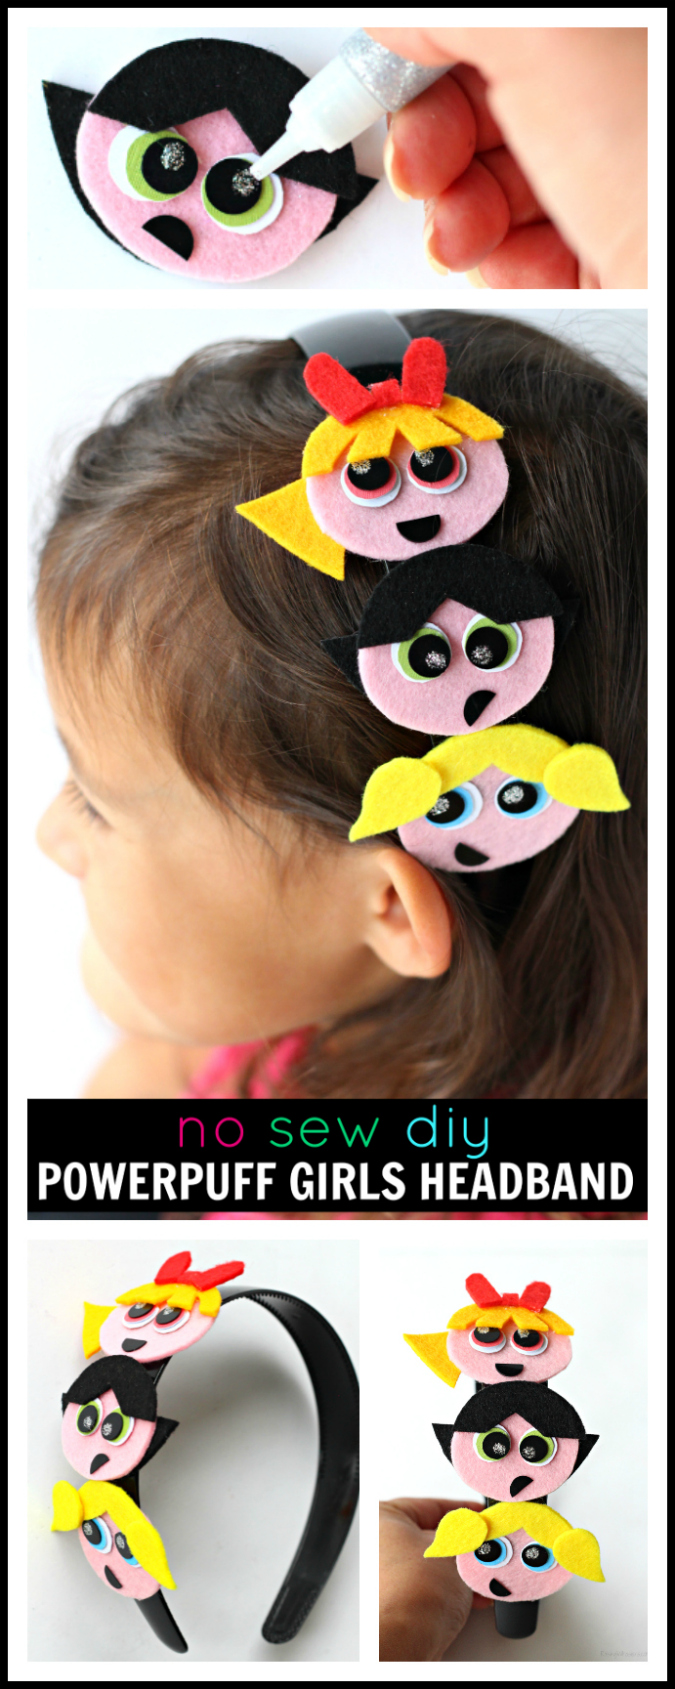 Powerpuff girls headband diy pinterest